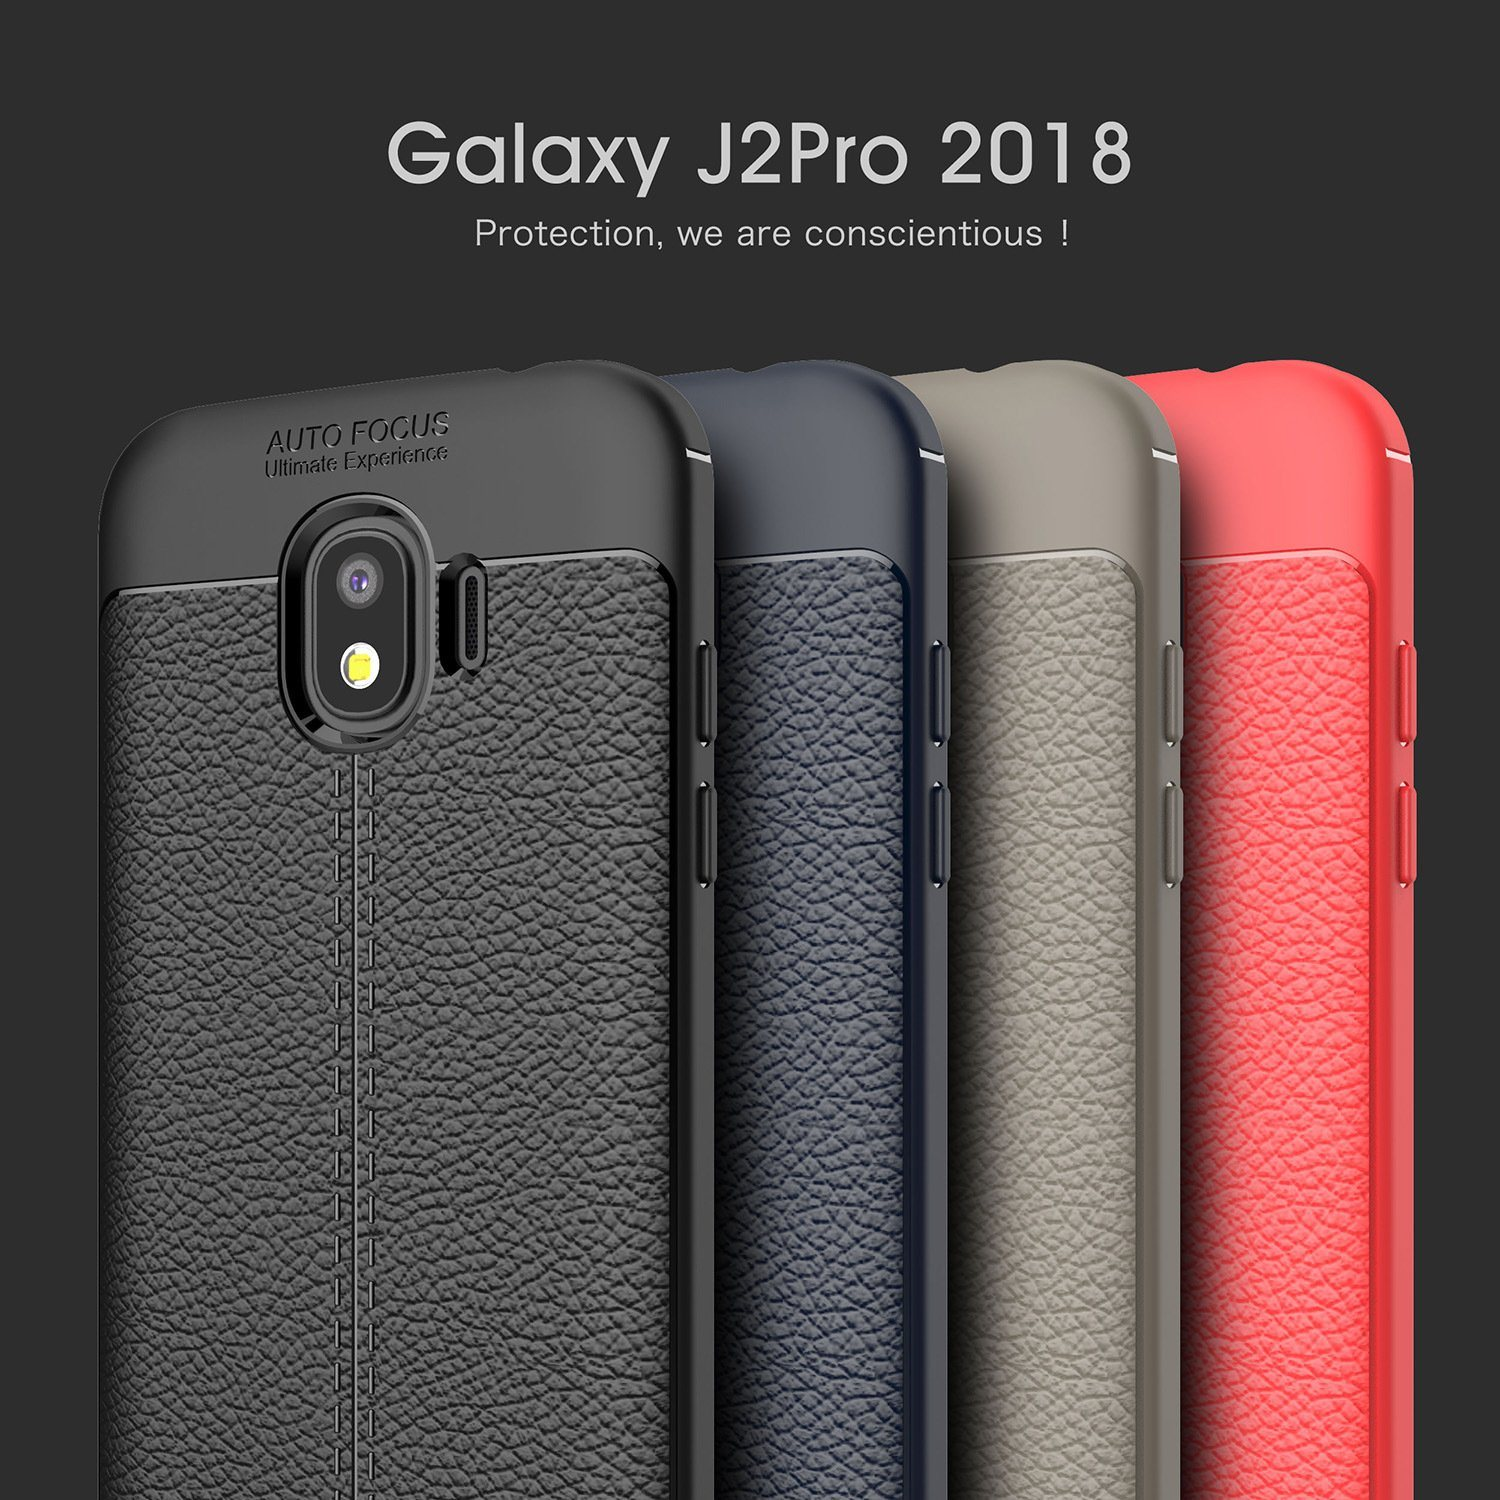 China Cell Phone Jelly Case For Samsung J2 Pro 2018 Tpu Oppo Mobile